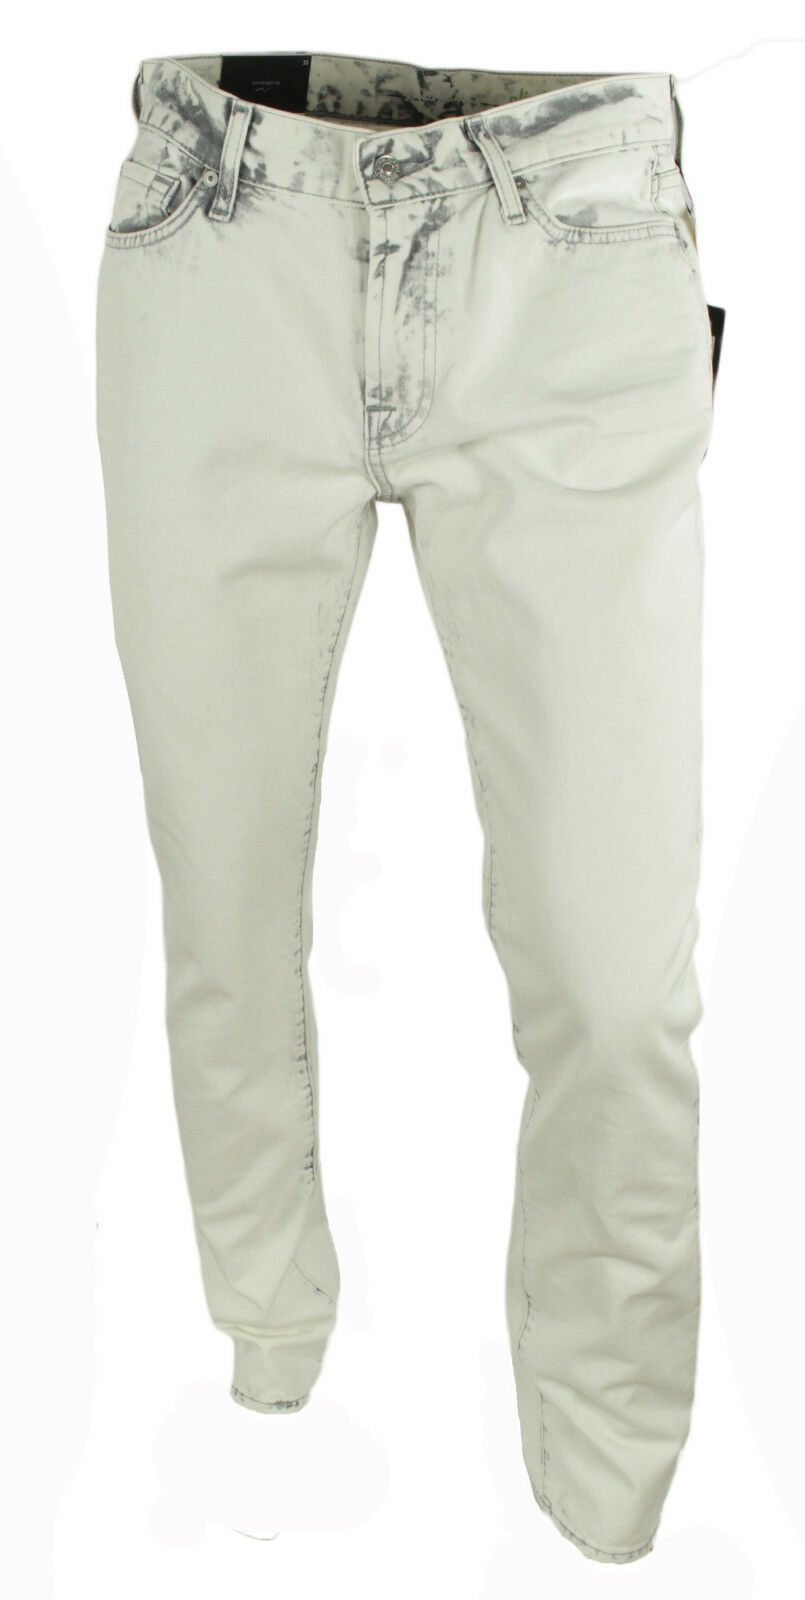 430b647d4b5 NEW 7 FOR MANKIND USA STRAIGHT LEG ALPINE WHITE JEANS 33 SLIM ALL  nfhxiy6023-Jeans